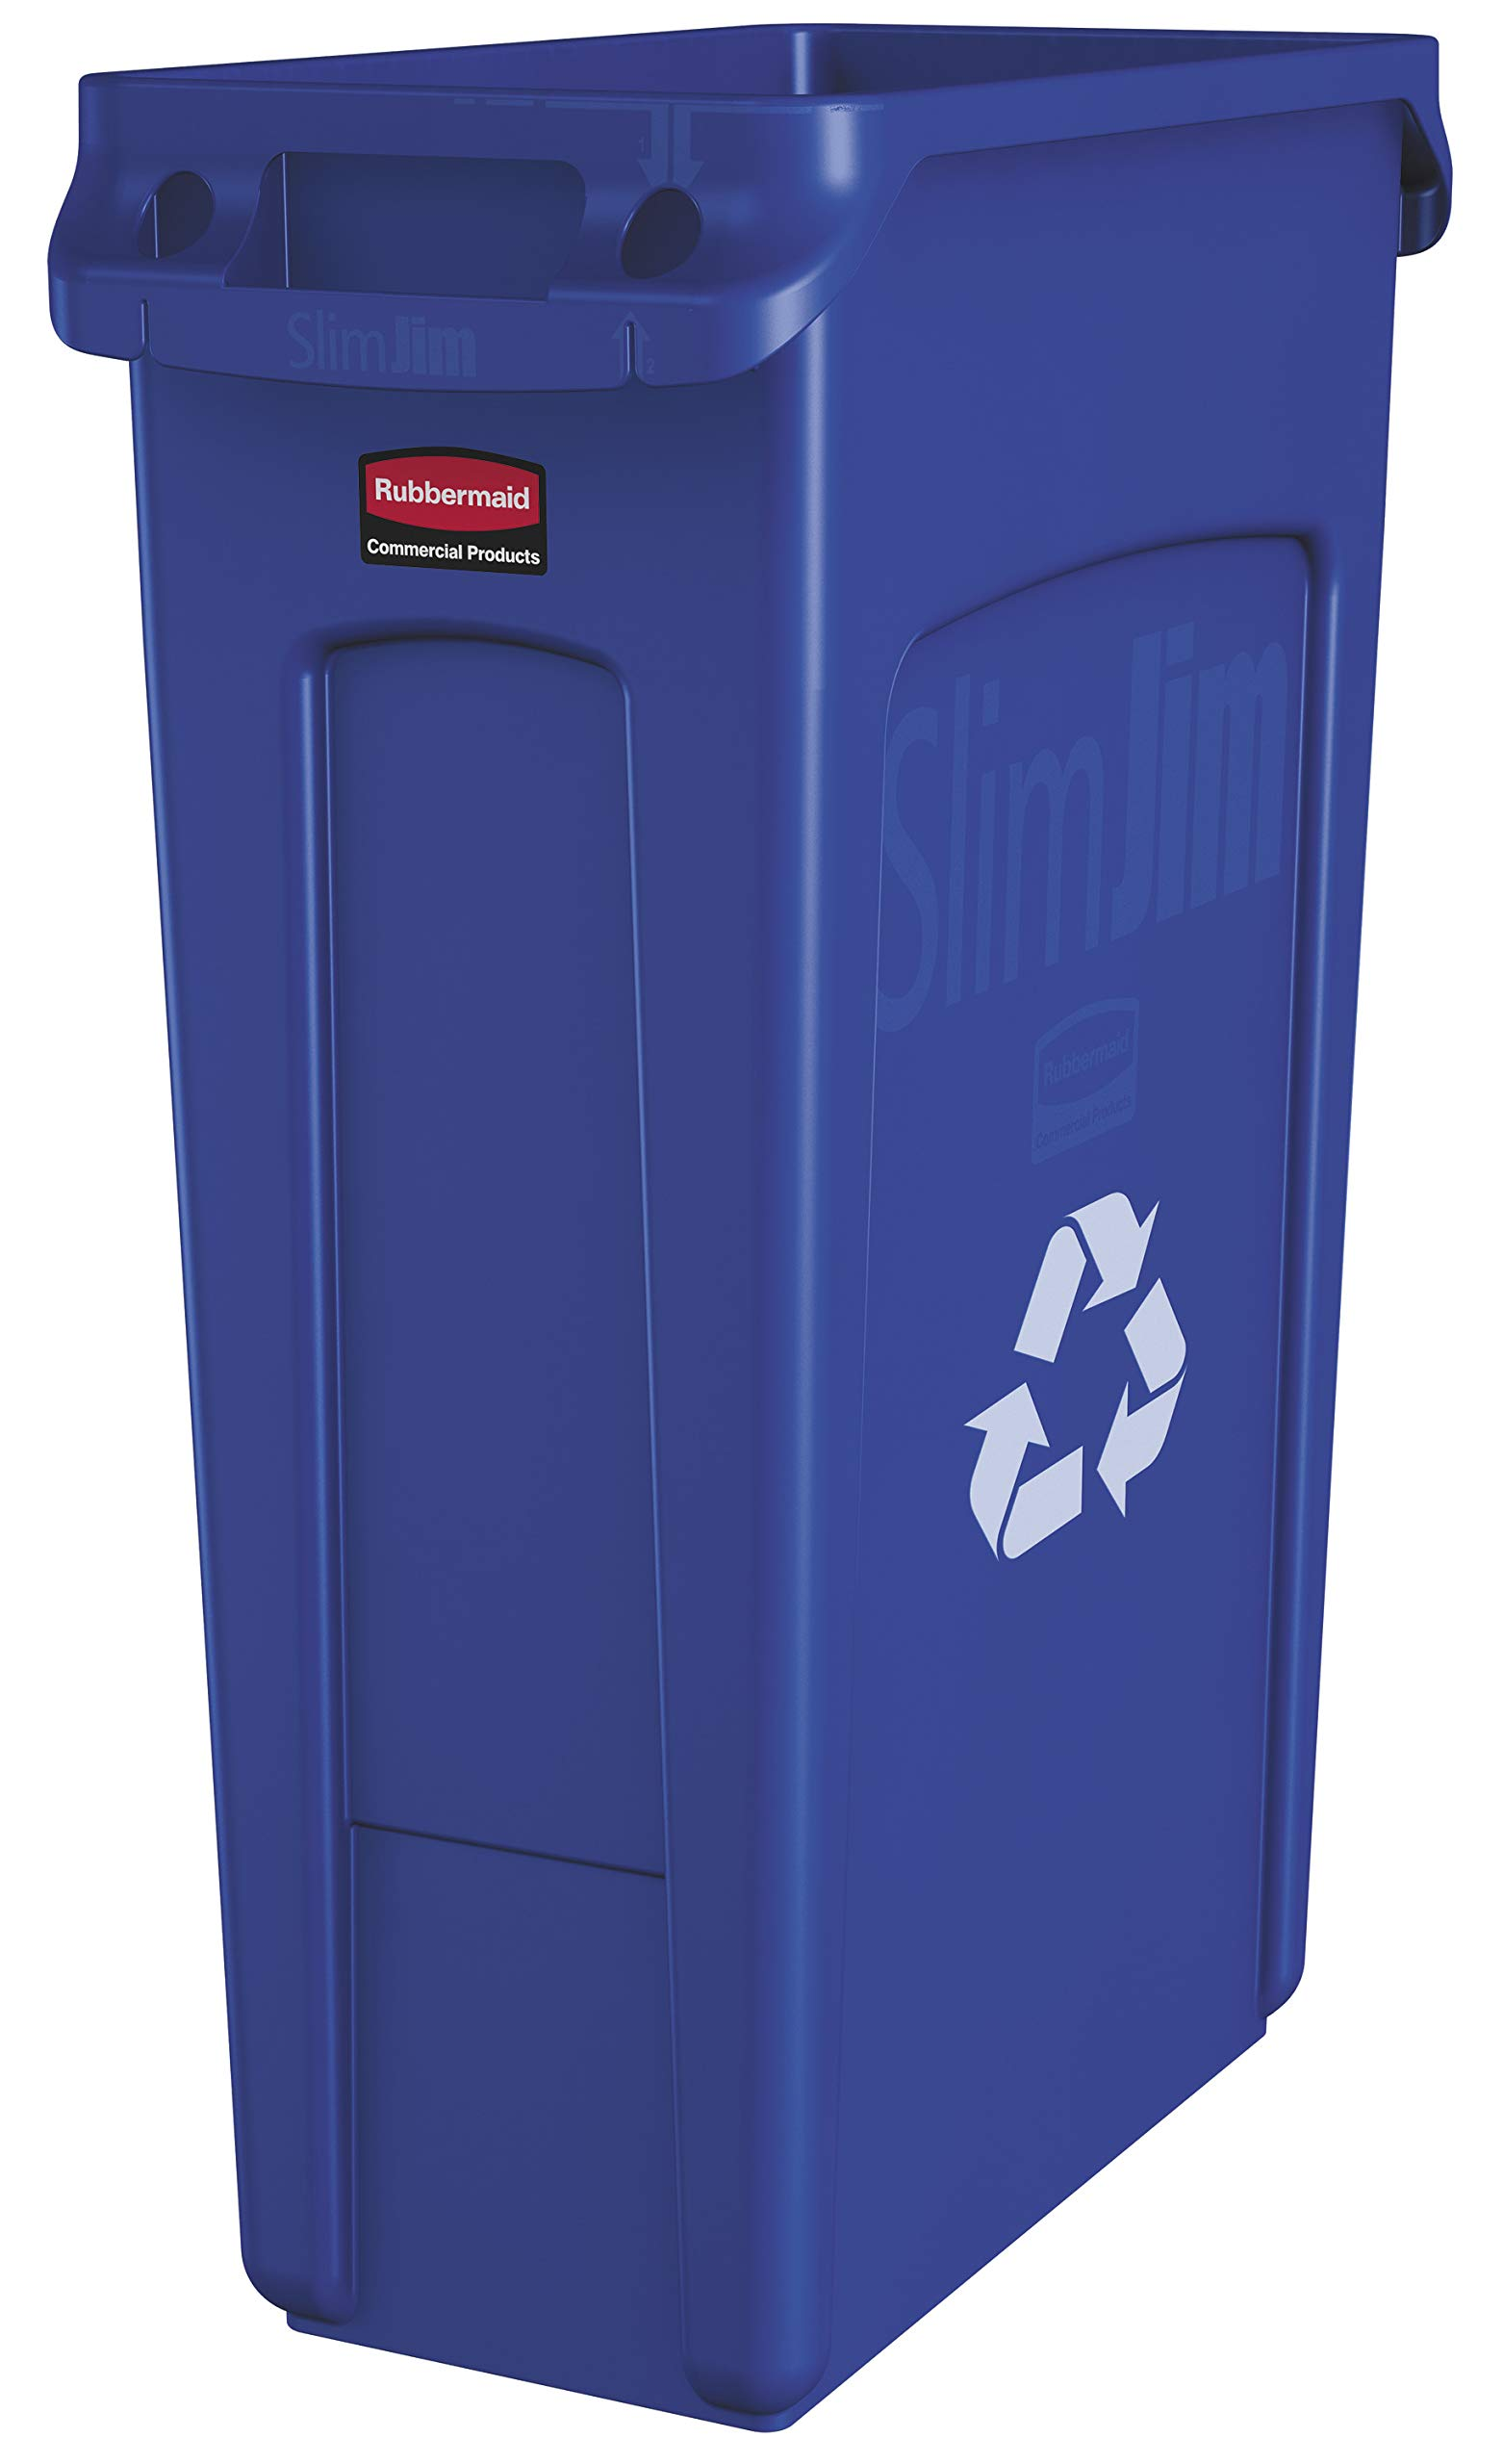 Rubbermaid Commercial Products Slim Jim Plastic Rectangular Recycling Bin with Venting Channels, 23 Gallon, Blue Recycling (FG354007BLUE) by Rubbermaid Commercial Products